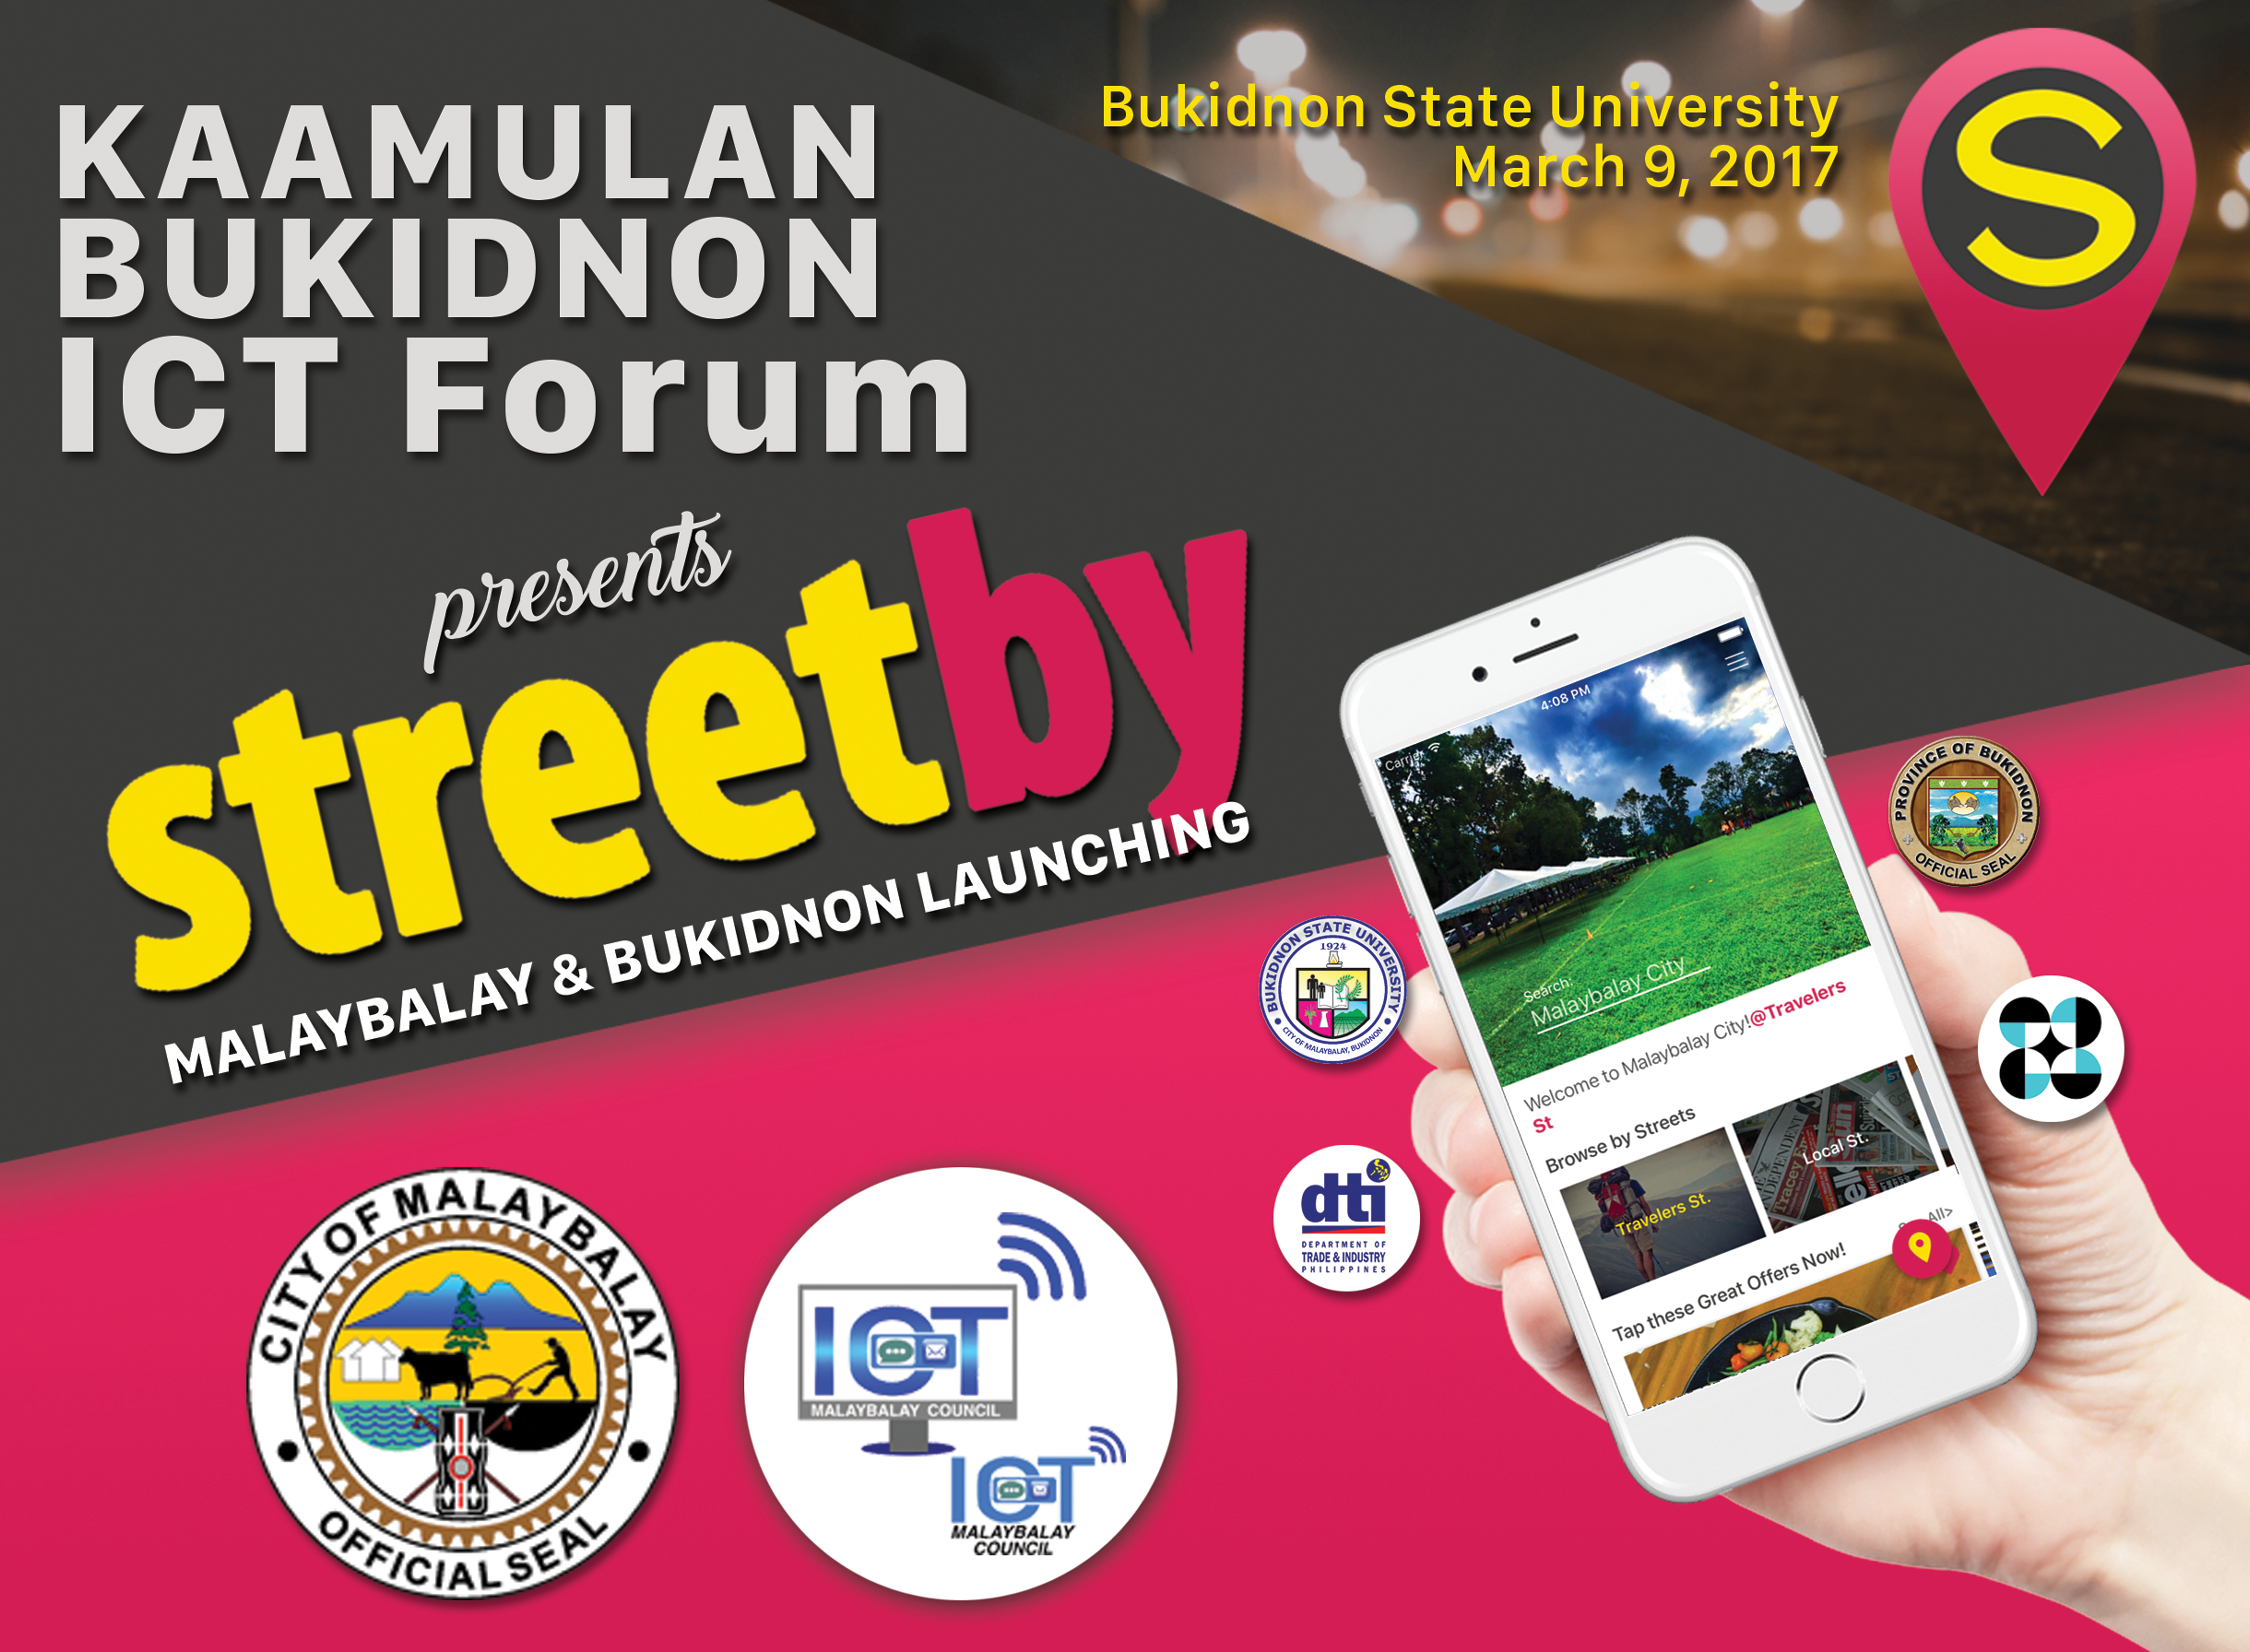 Streetby bukidnon, Oro Mobile App, local mobile app, Malaybalay ICT Council, Agila Innovations